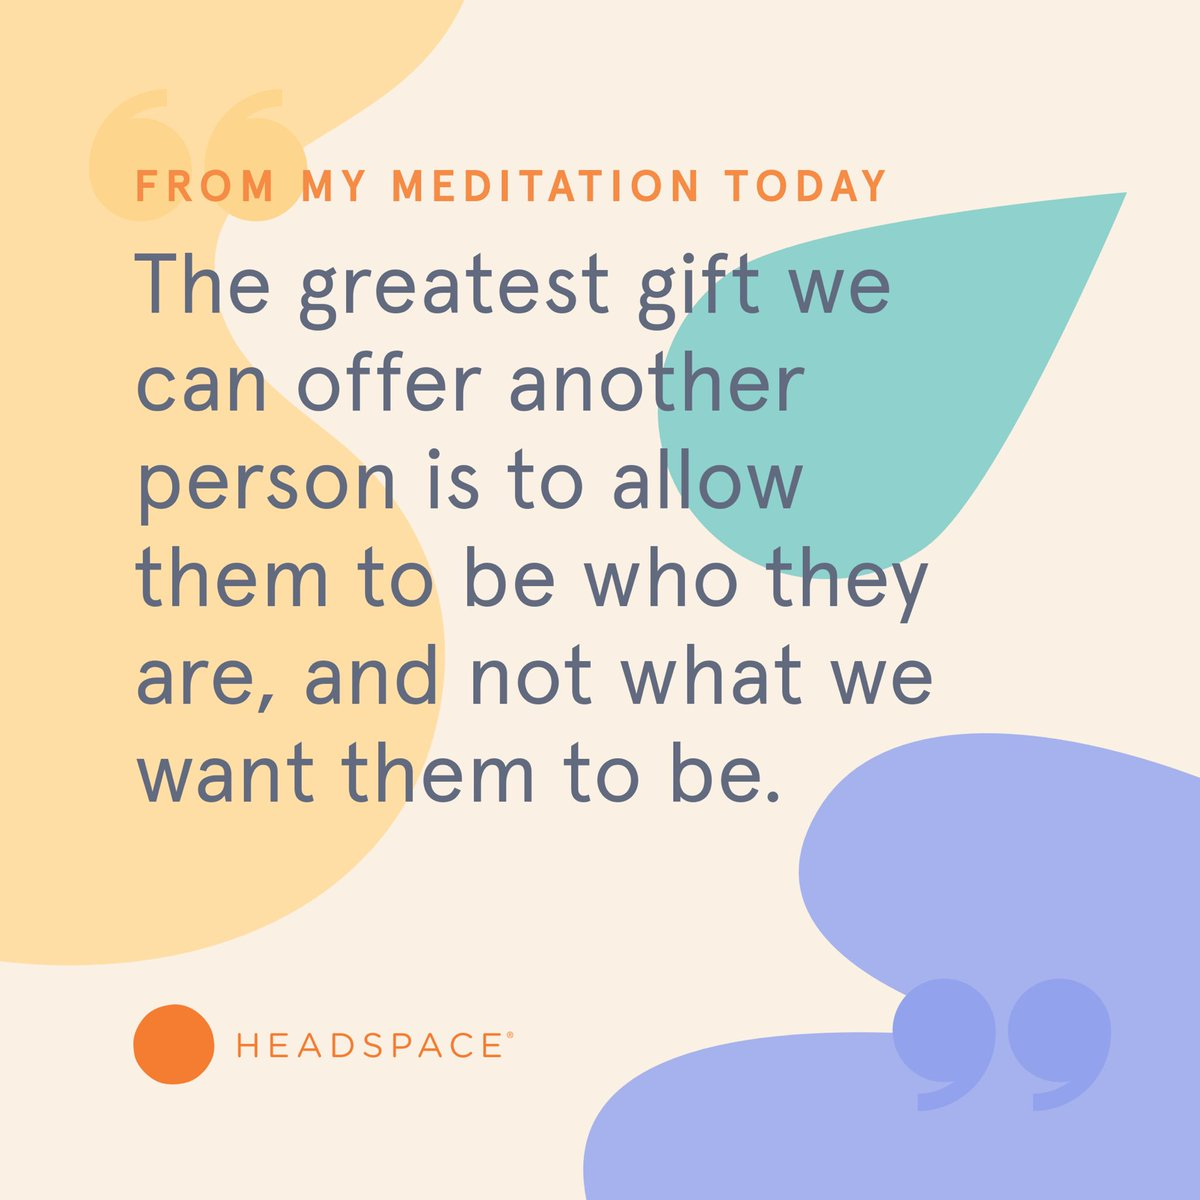 The greatest gift we can offer another person is to allow them to be who they are, and not what we want them to be